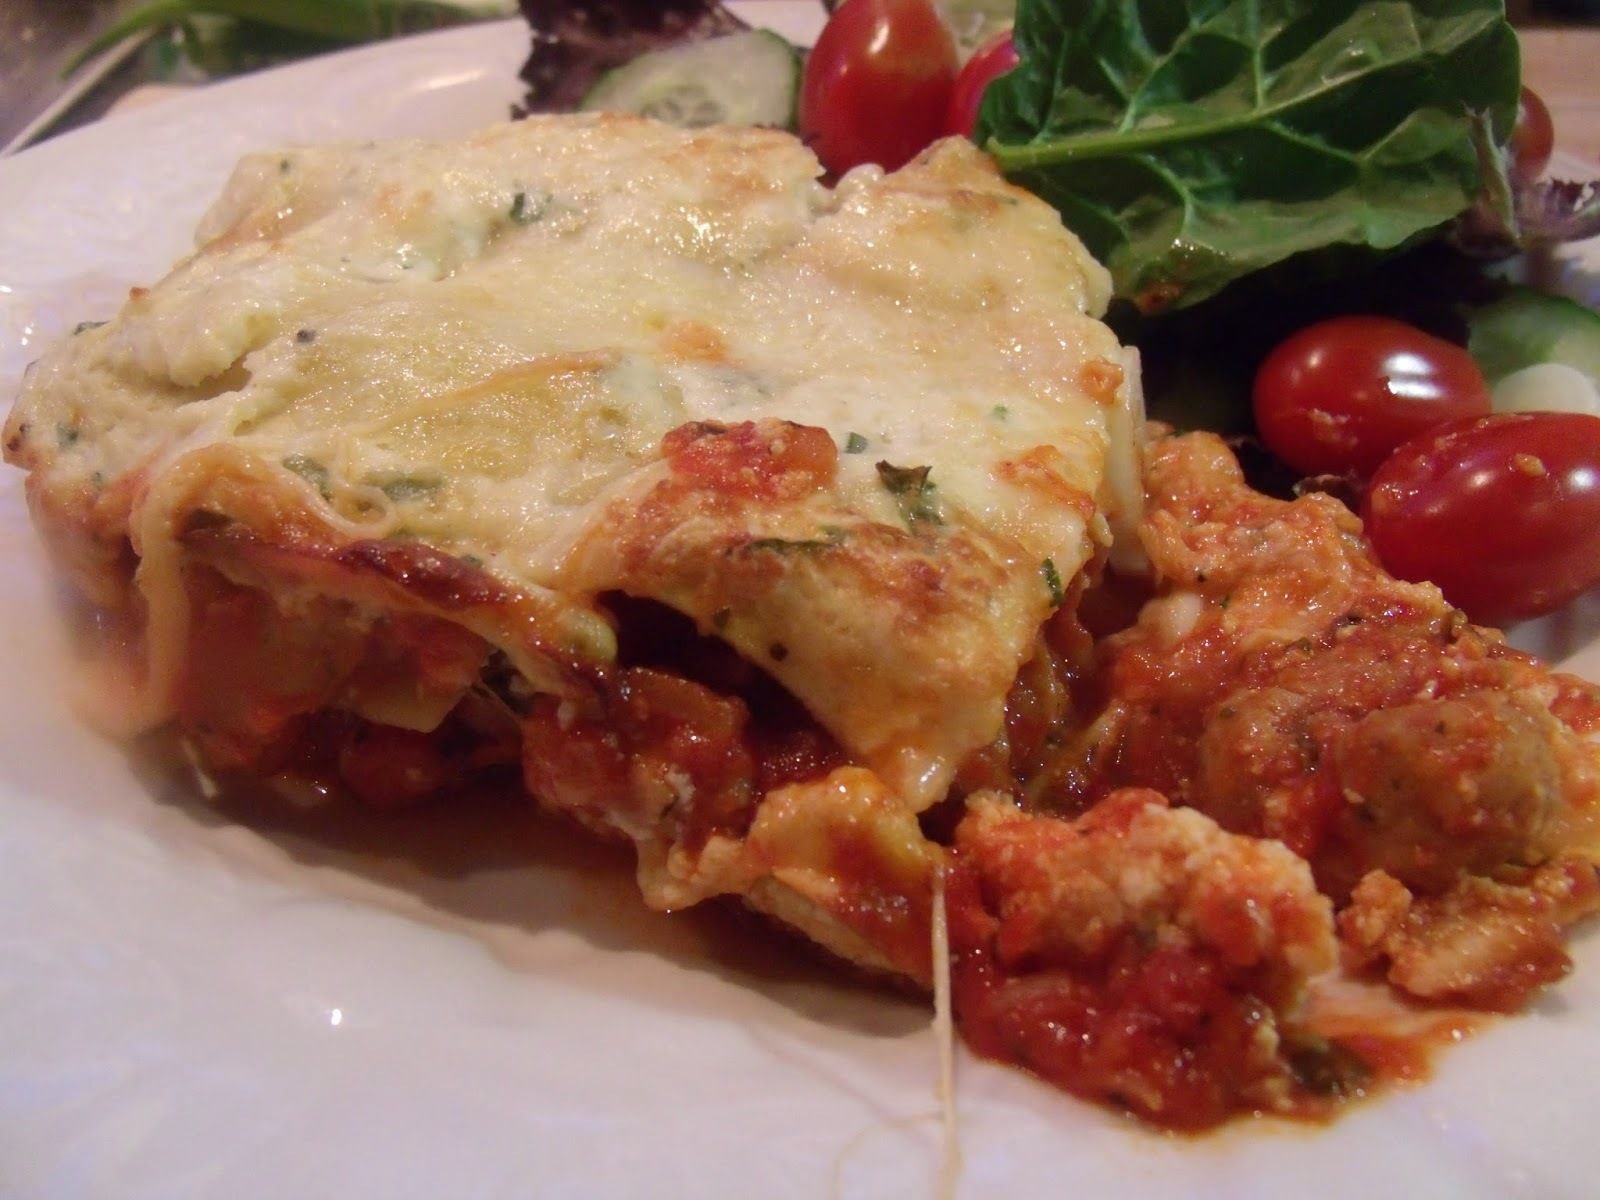 Not quite Barefoot Contessa, but close: Lasagne with Chicken Sausage